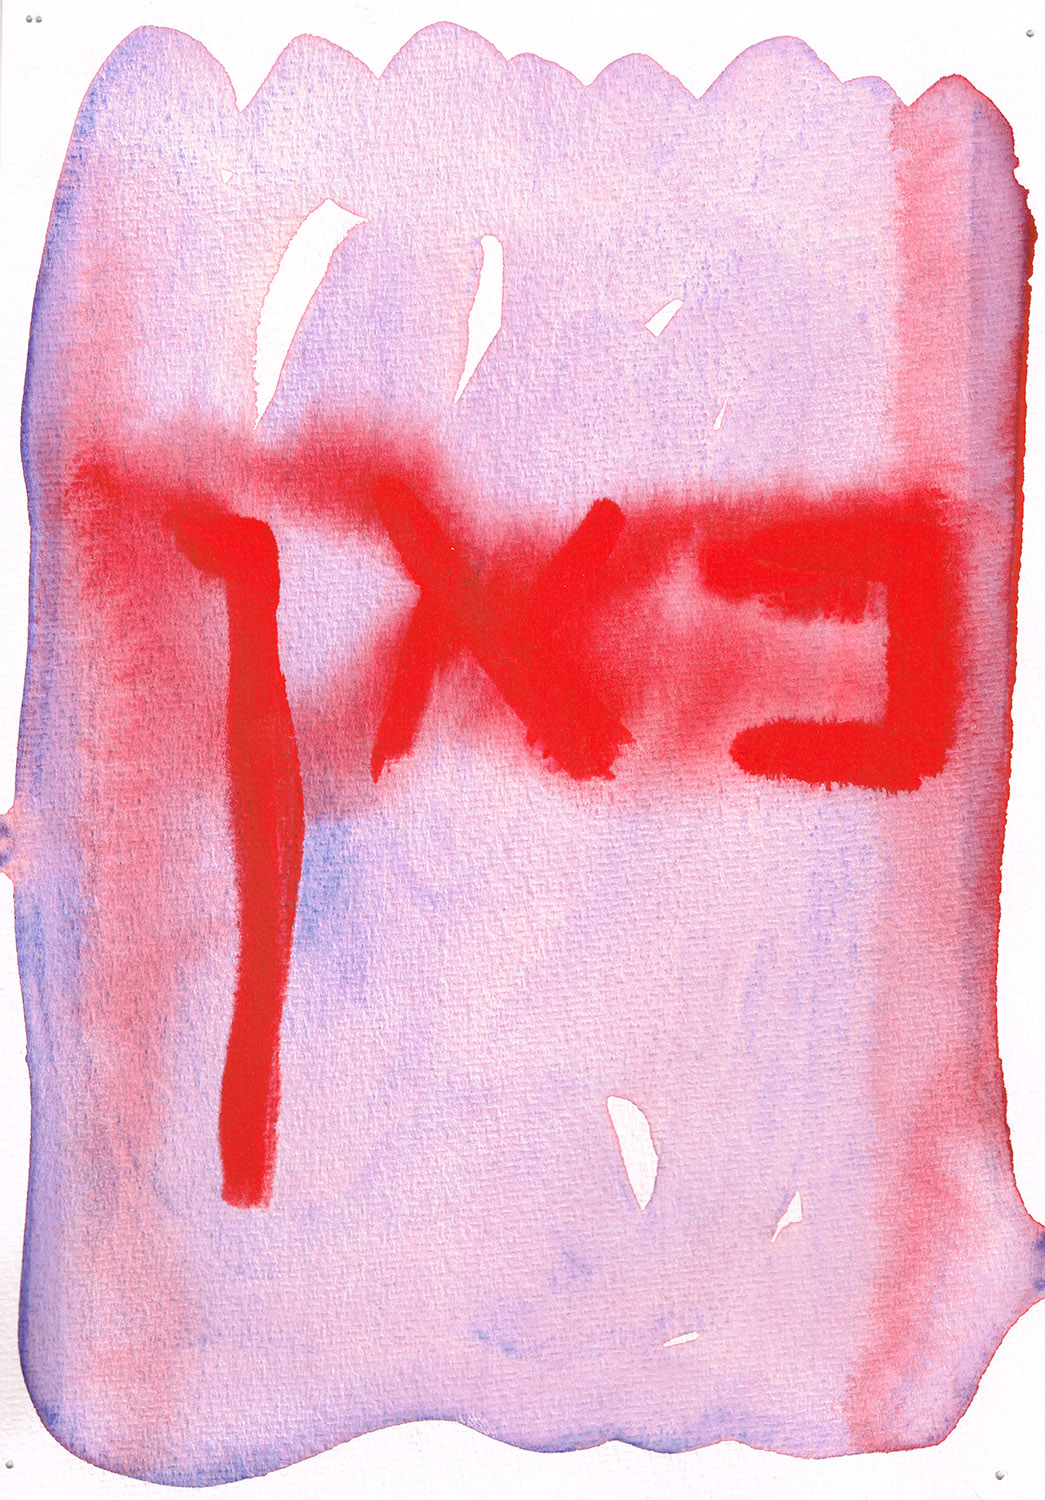 No.7 | Gouache on paper | 2019